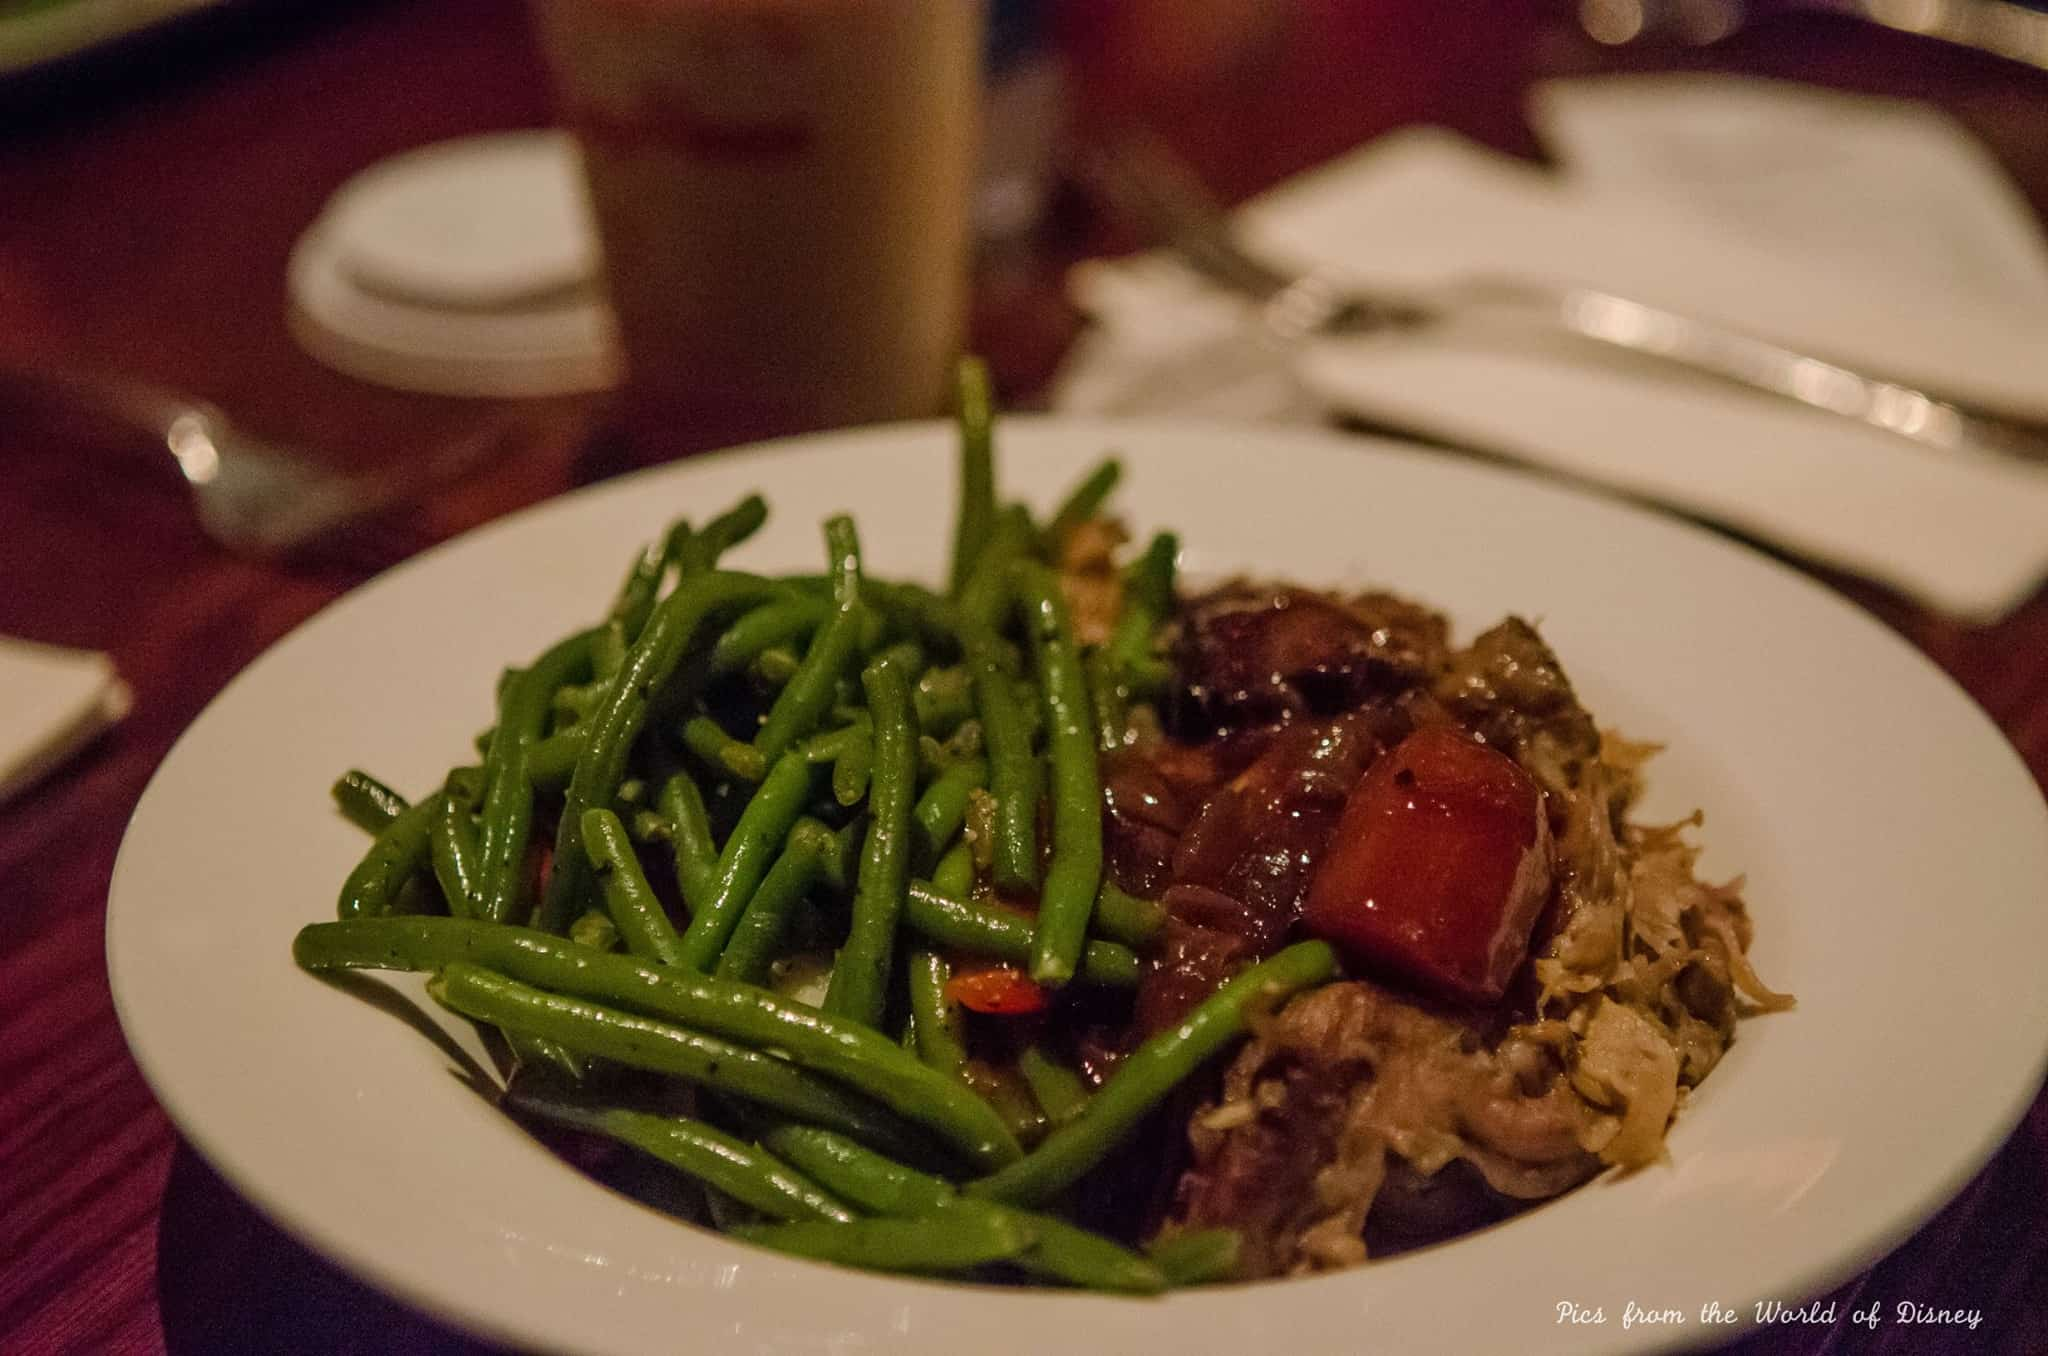 Dinner at Be Our Guest restaurant in Walt Disney World